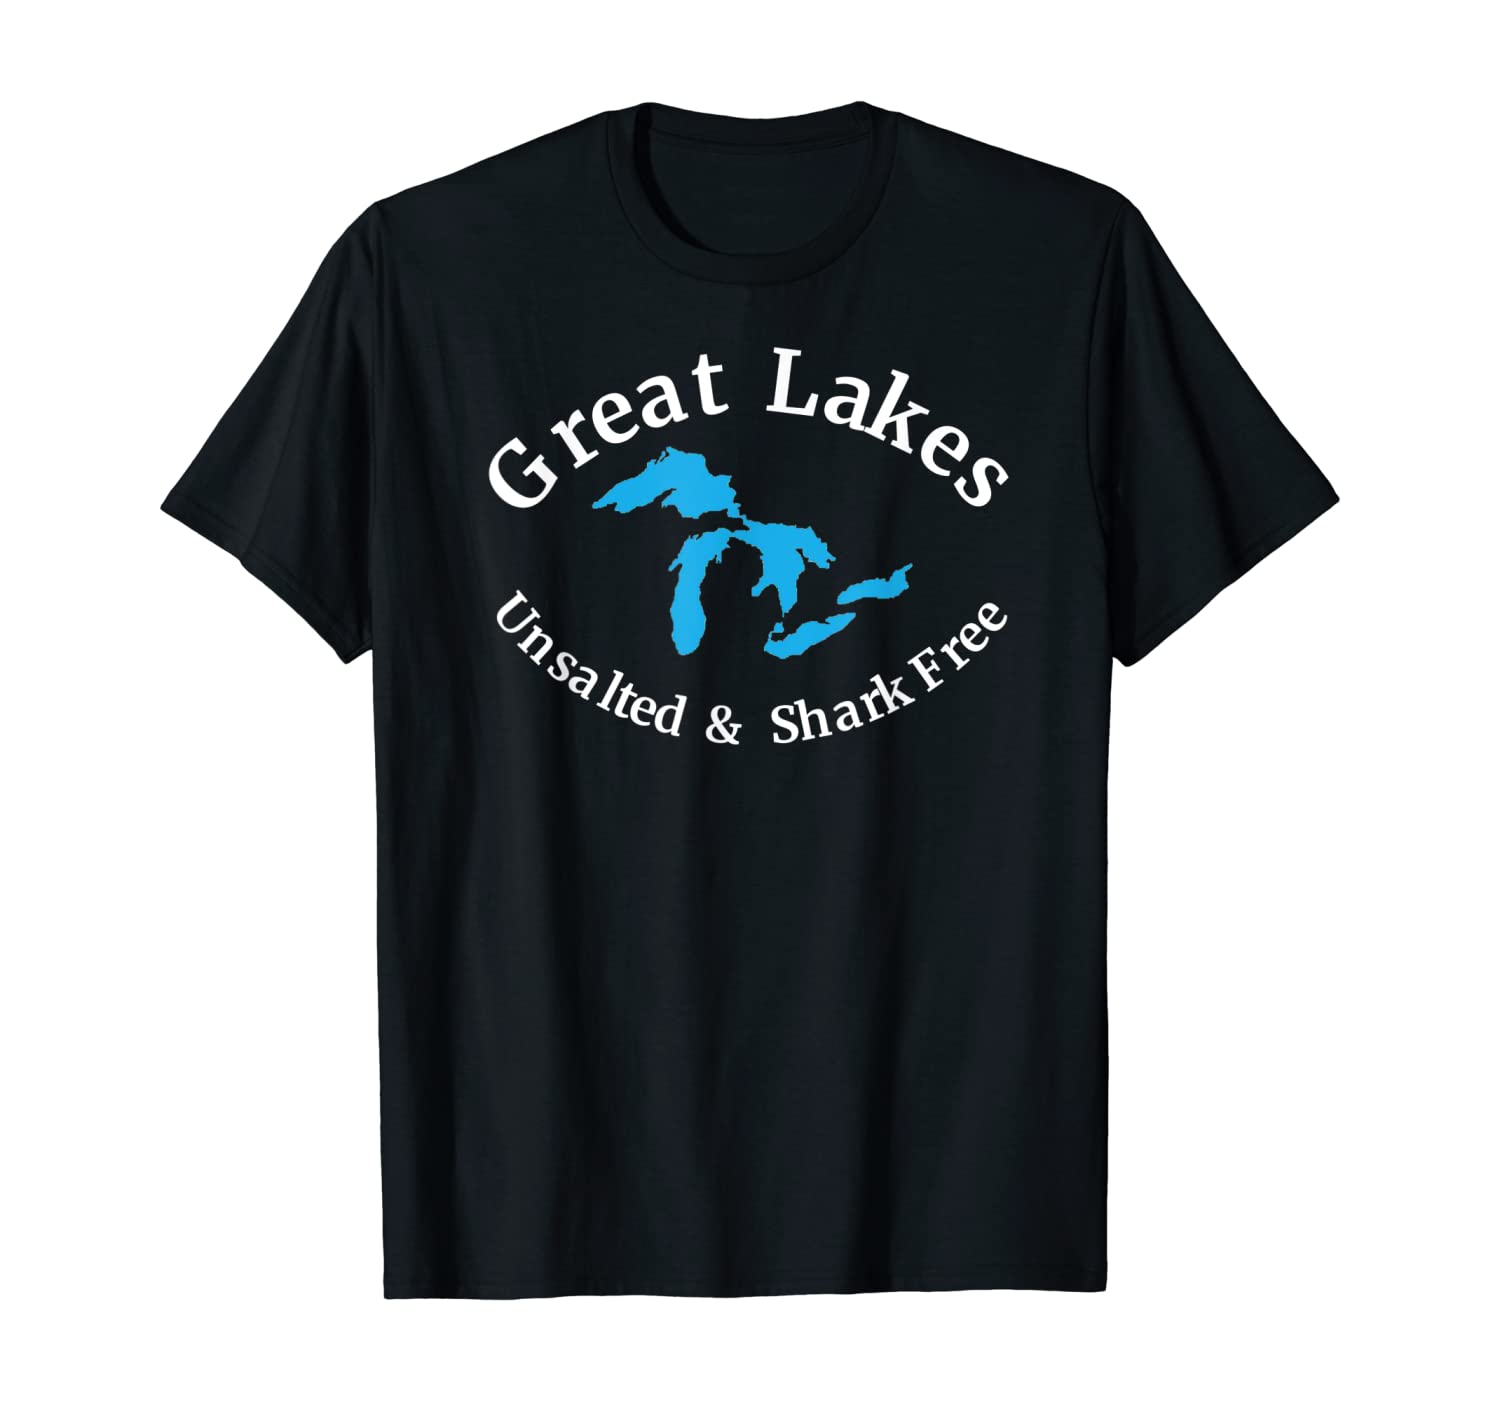 Great Lakes Unsalted & Shark Free T-Shirt